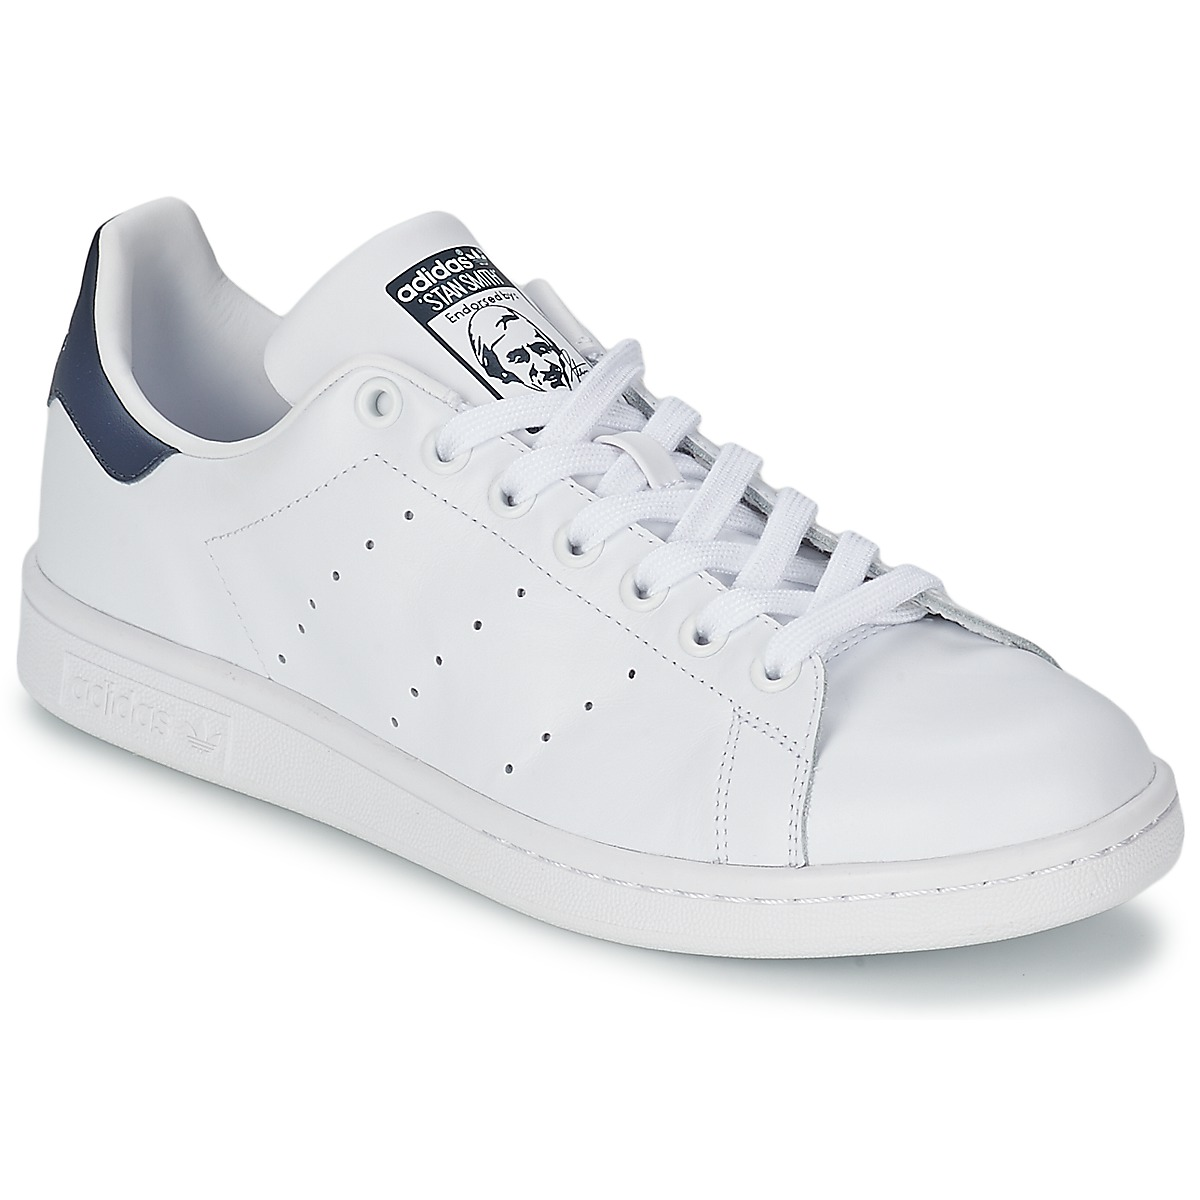 Stan Smith Bleu Ciel